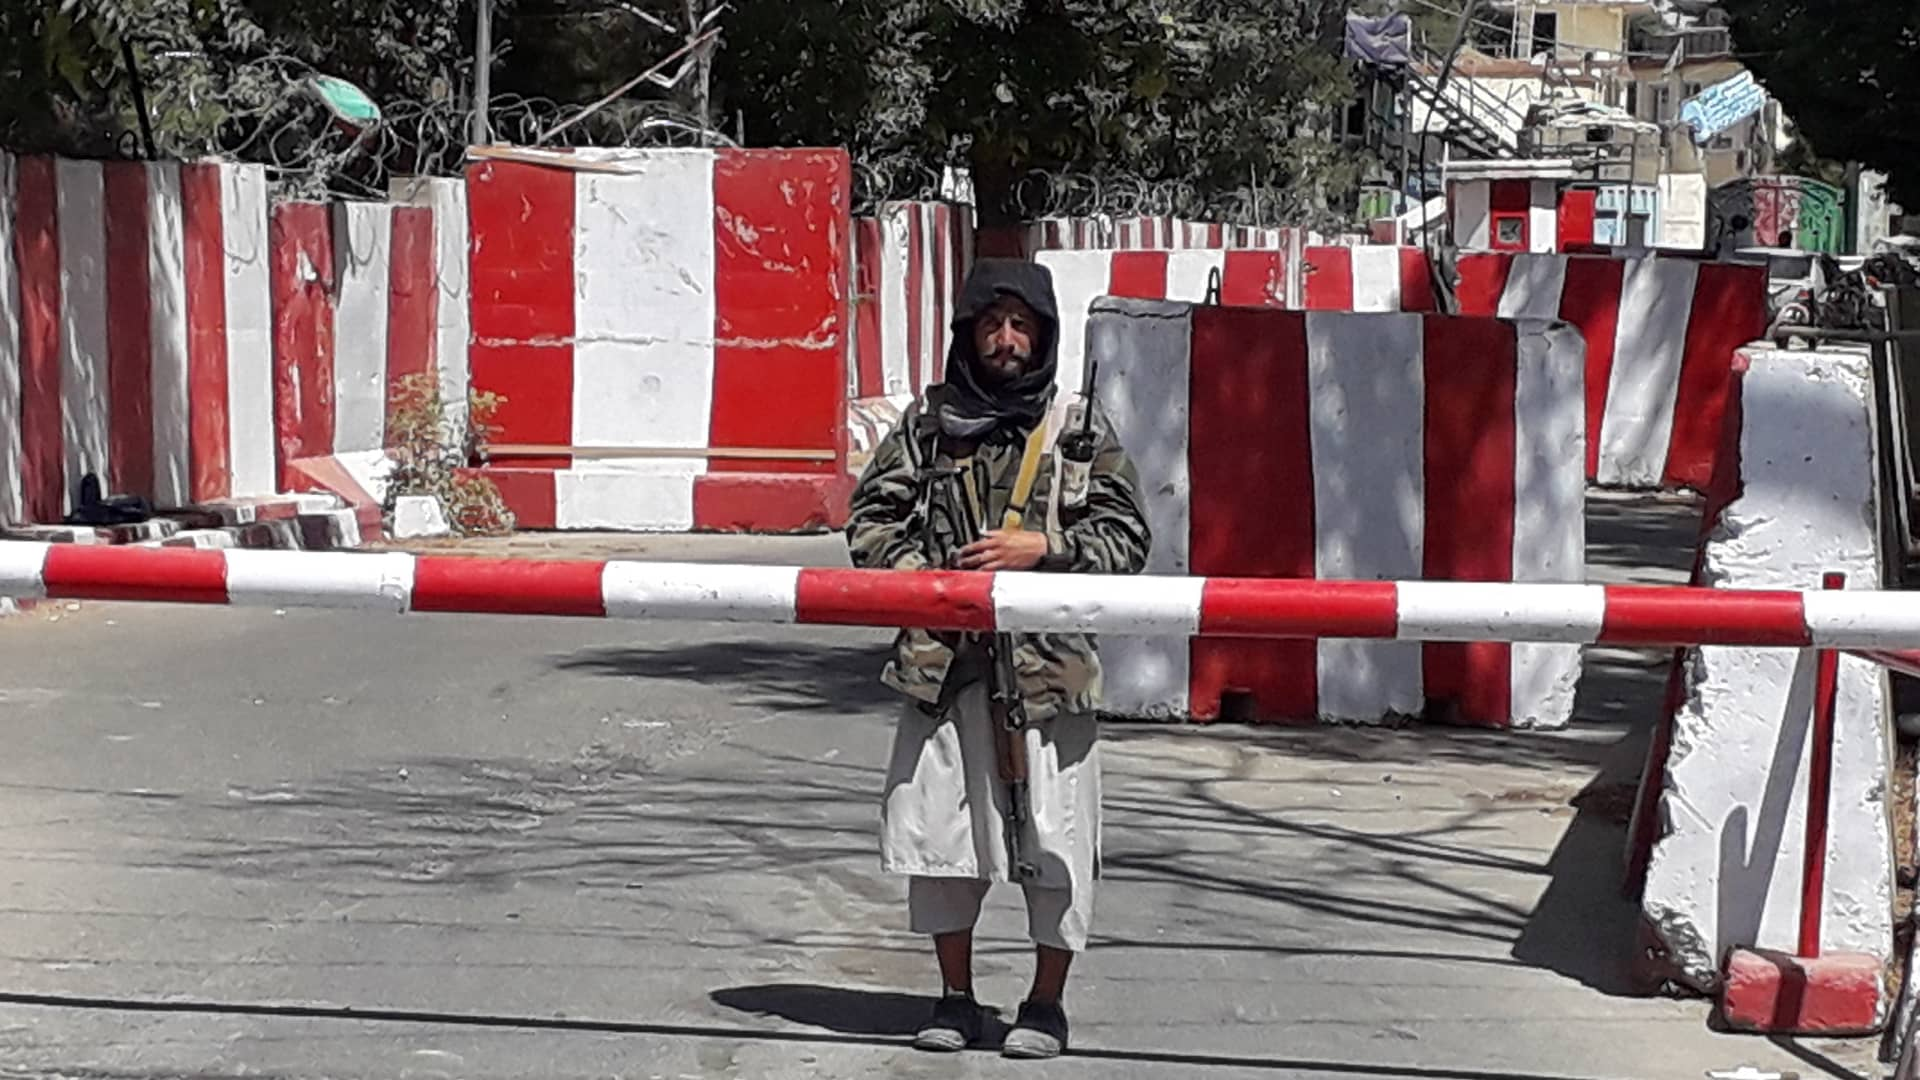 A Taliban fighter stands guard at the entrance of the police headquarters in Ghazni on August 12, 2021, as Taliban move closer to Afghan capital after taking Ghazni city.